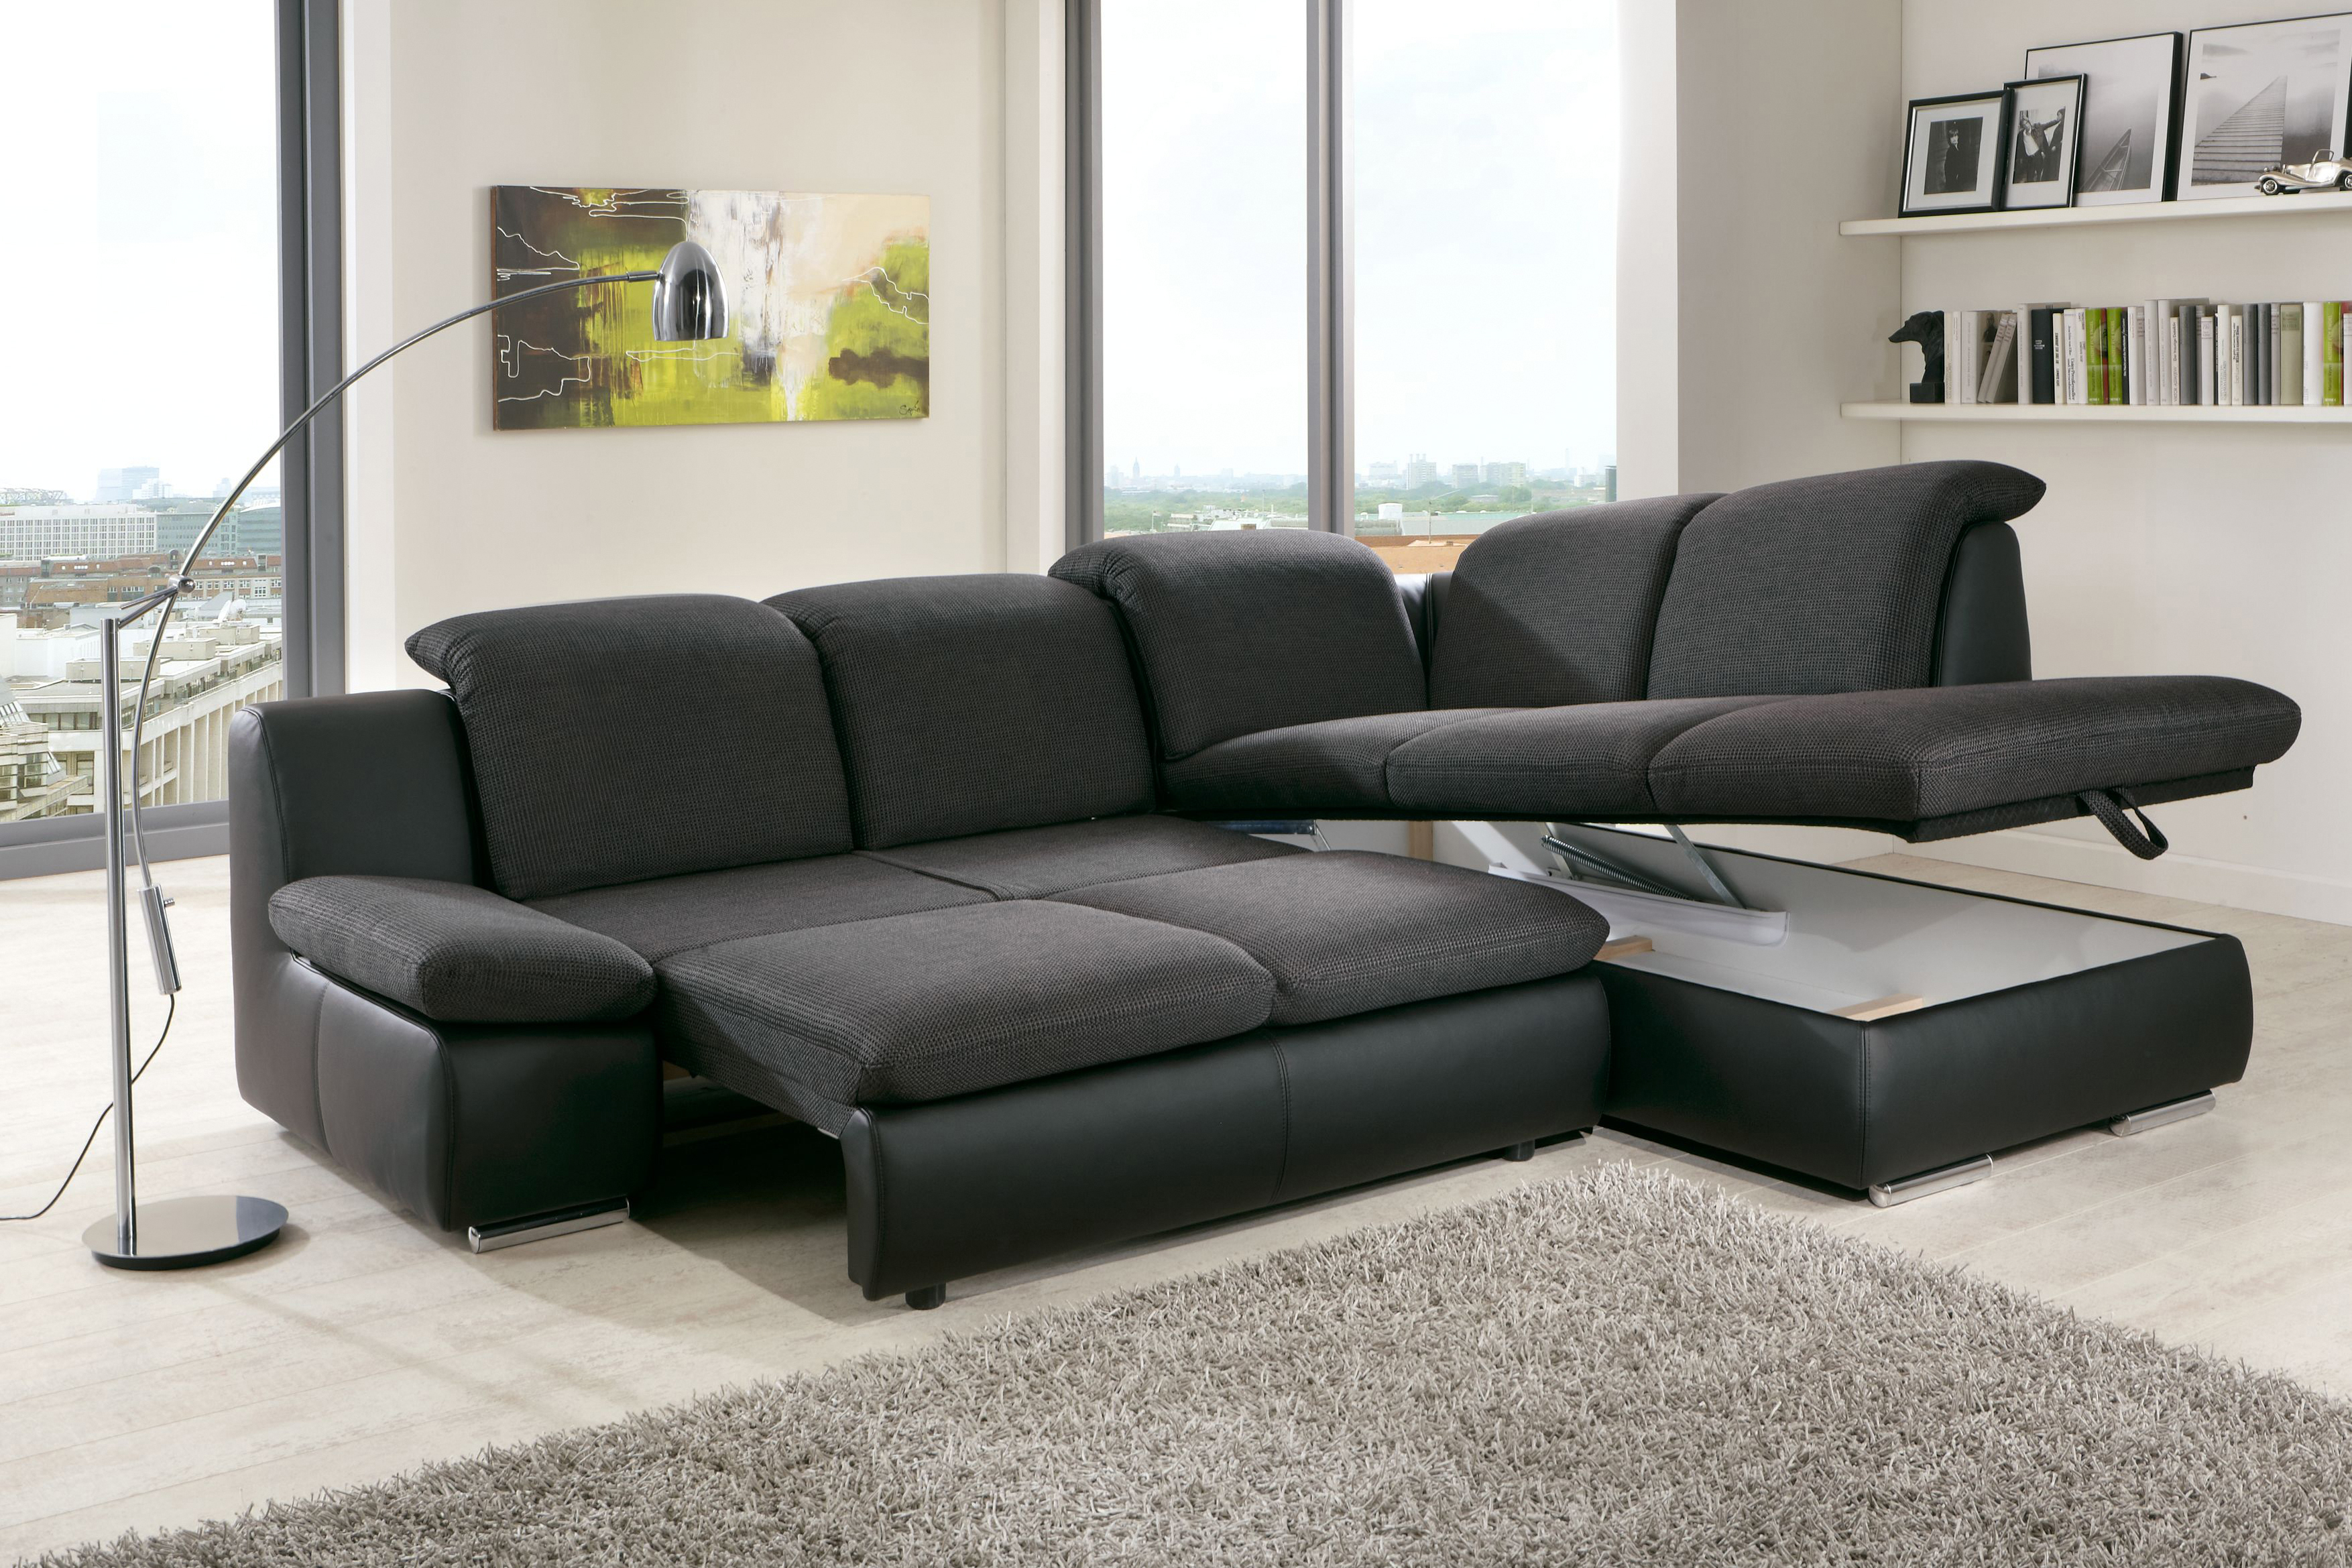 ecksofa isona in anthrazit schwarz von poco m bel letz ihr online shop. Black Bedroom Furniture Sets. Home Design Ideas